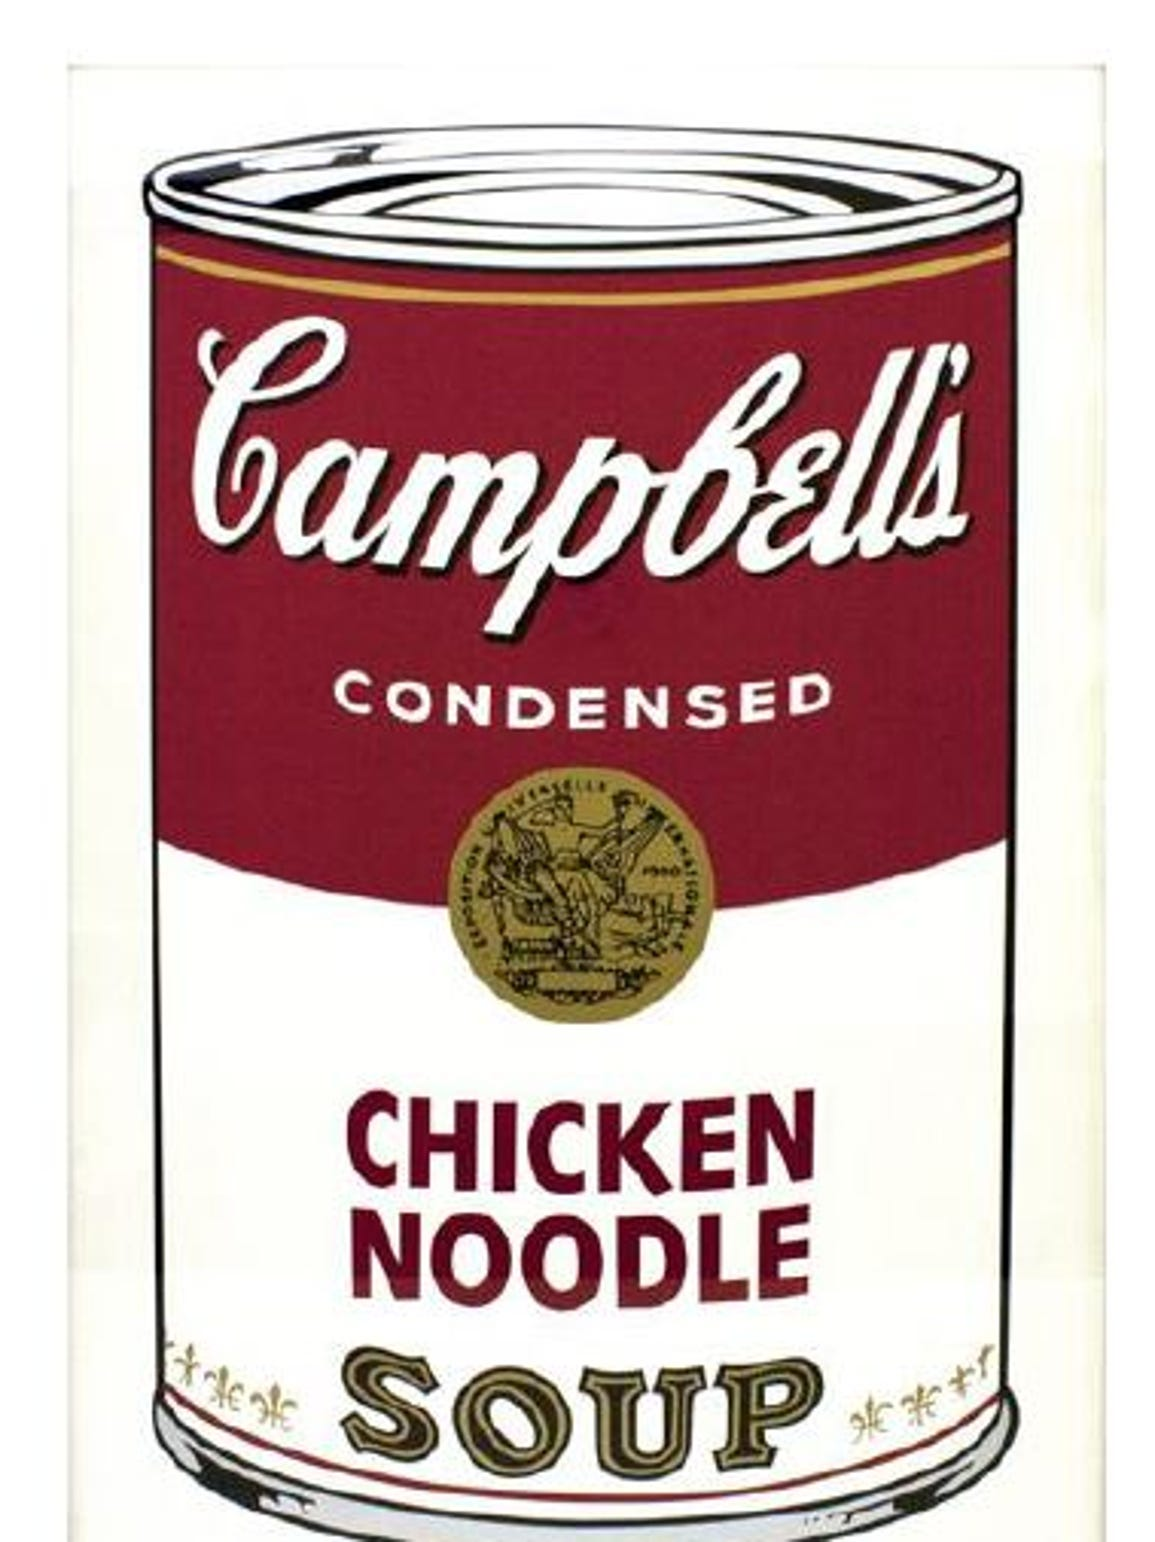 Campbell's Soup I (Chicken Noodle), one of the prints